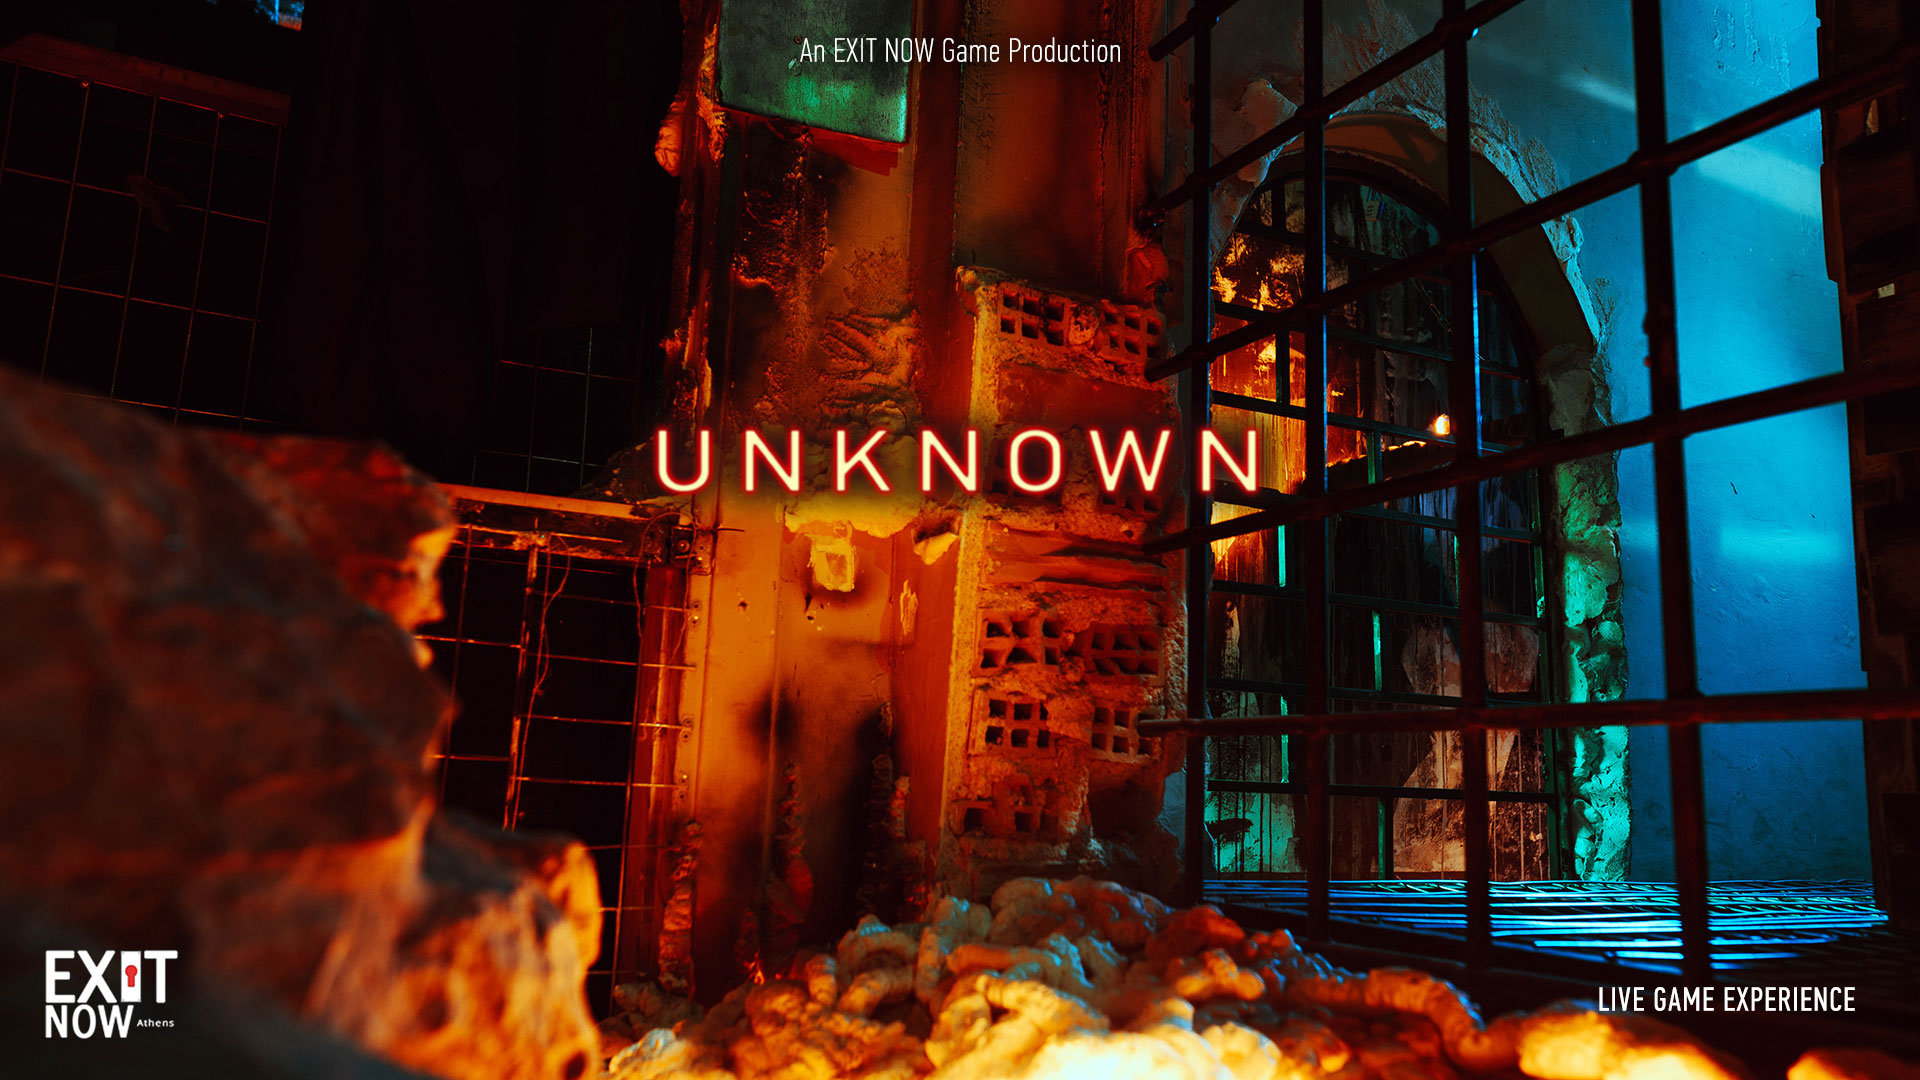 UKNOWN MAIN | EXIT NOW | Live Game Experience | Escape Room | Services